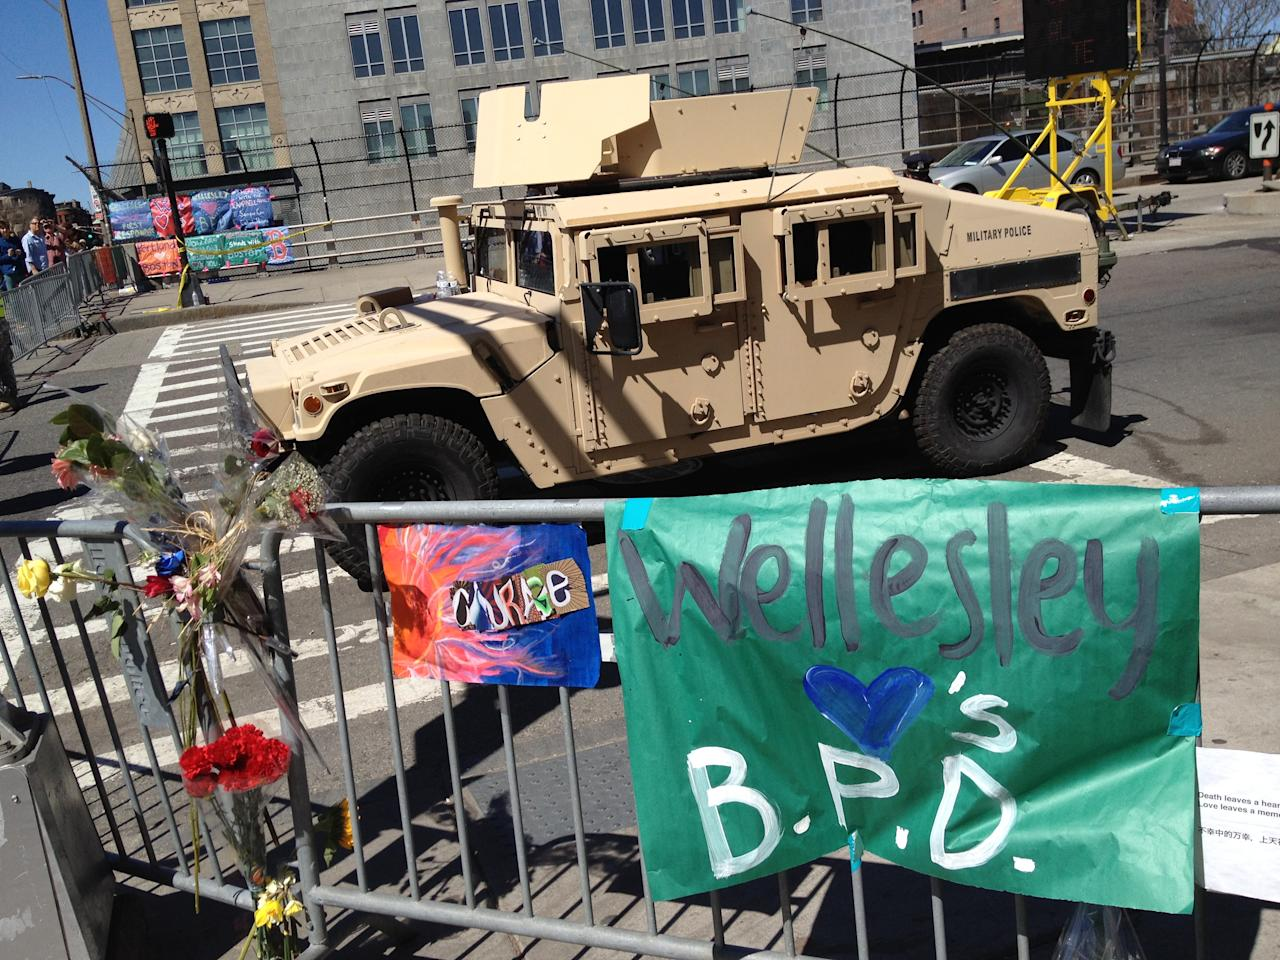 A U.S. military Humvee sits parked inside a barricade west of the marathon bombings site, Boston, April 17, 2013. Credit: Dylan Stableford